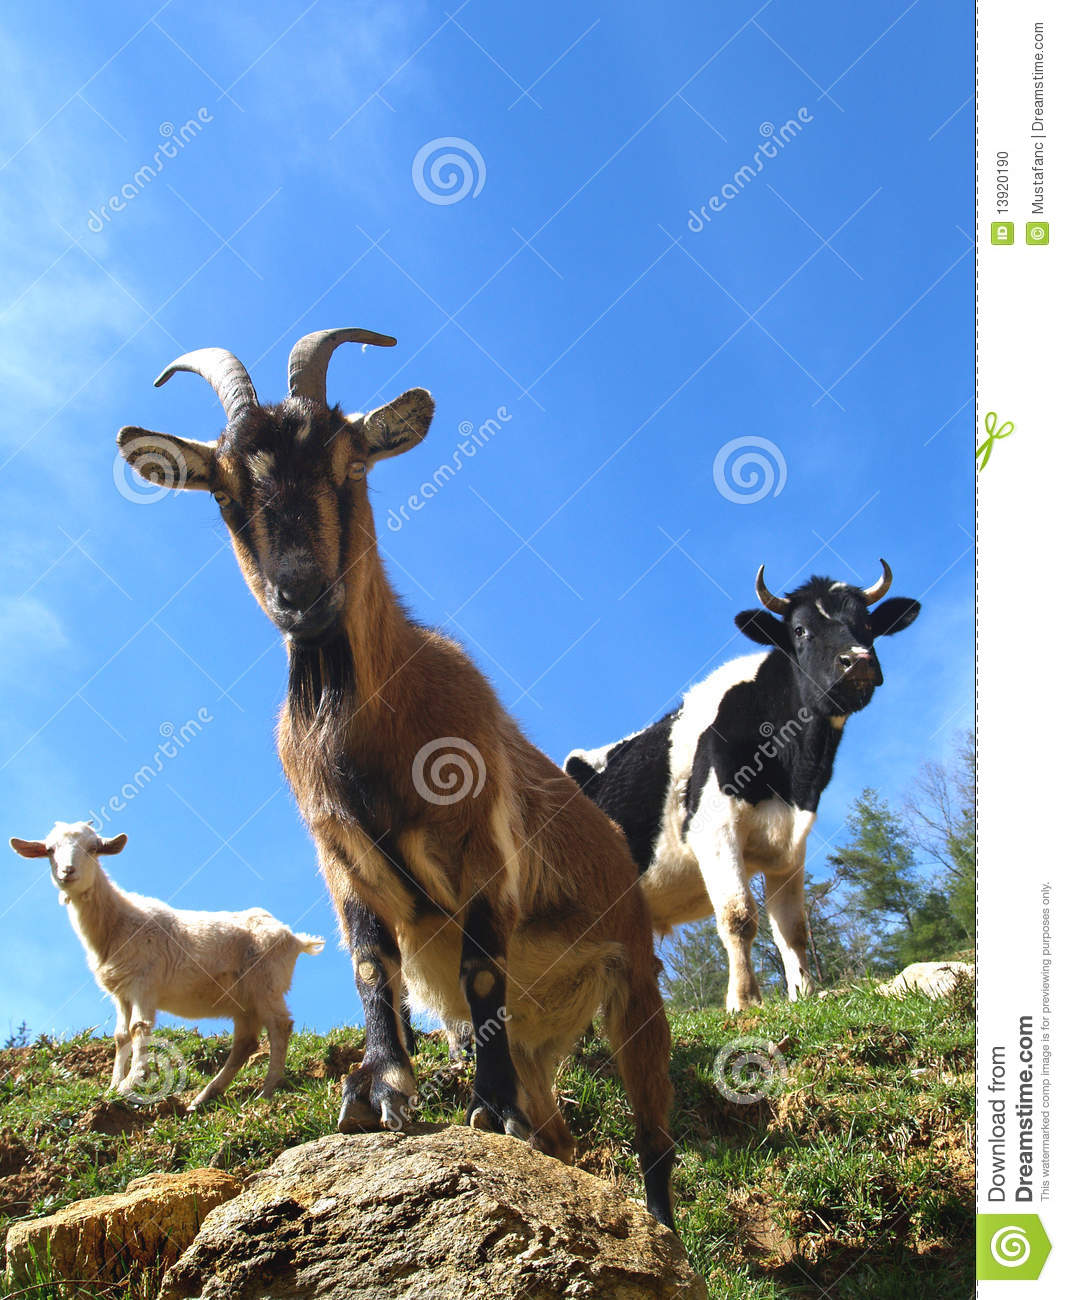 Goats and bull